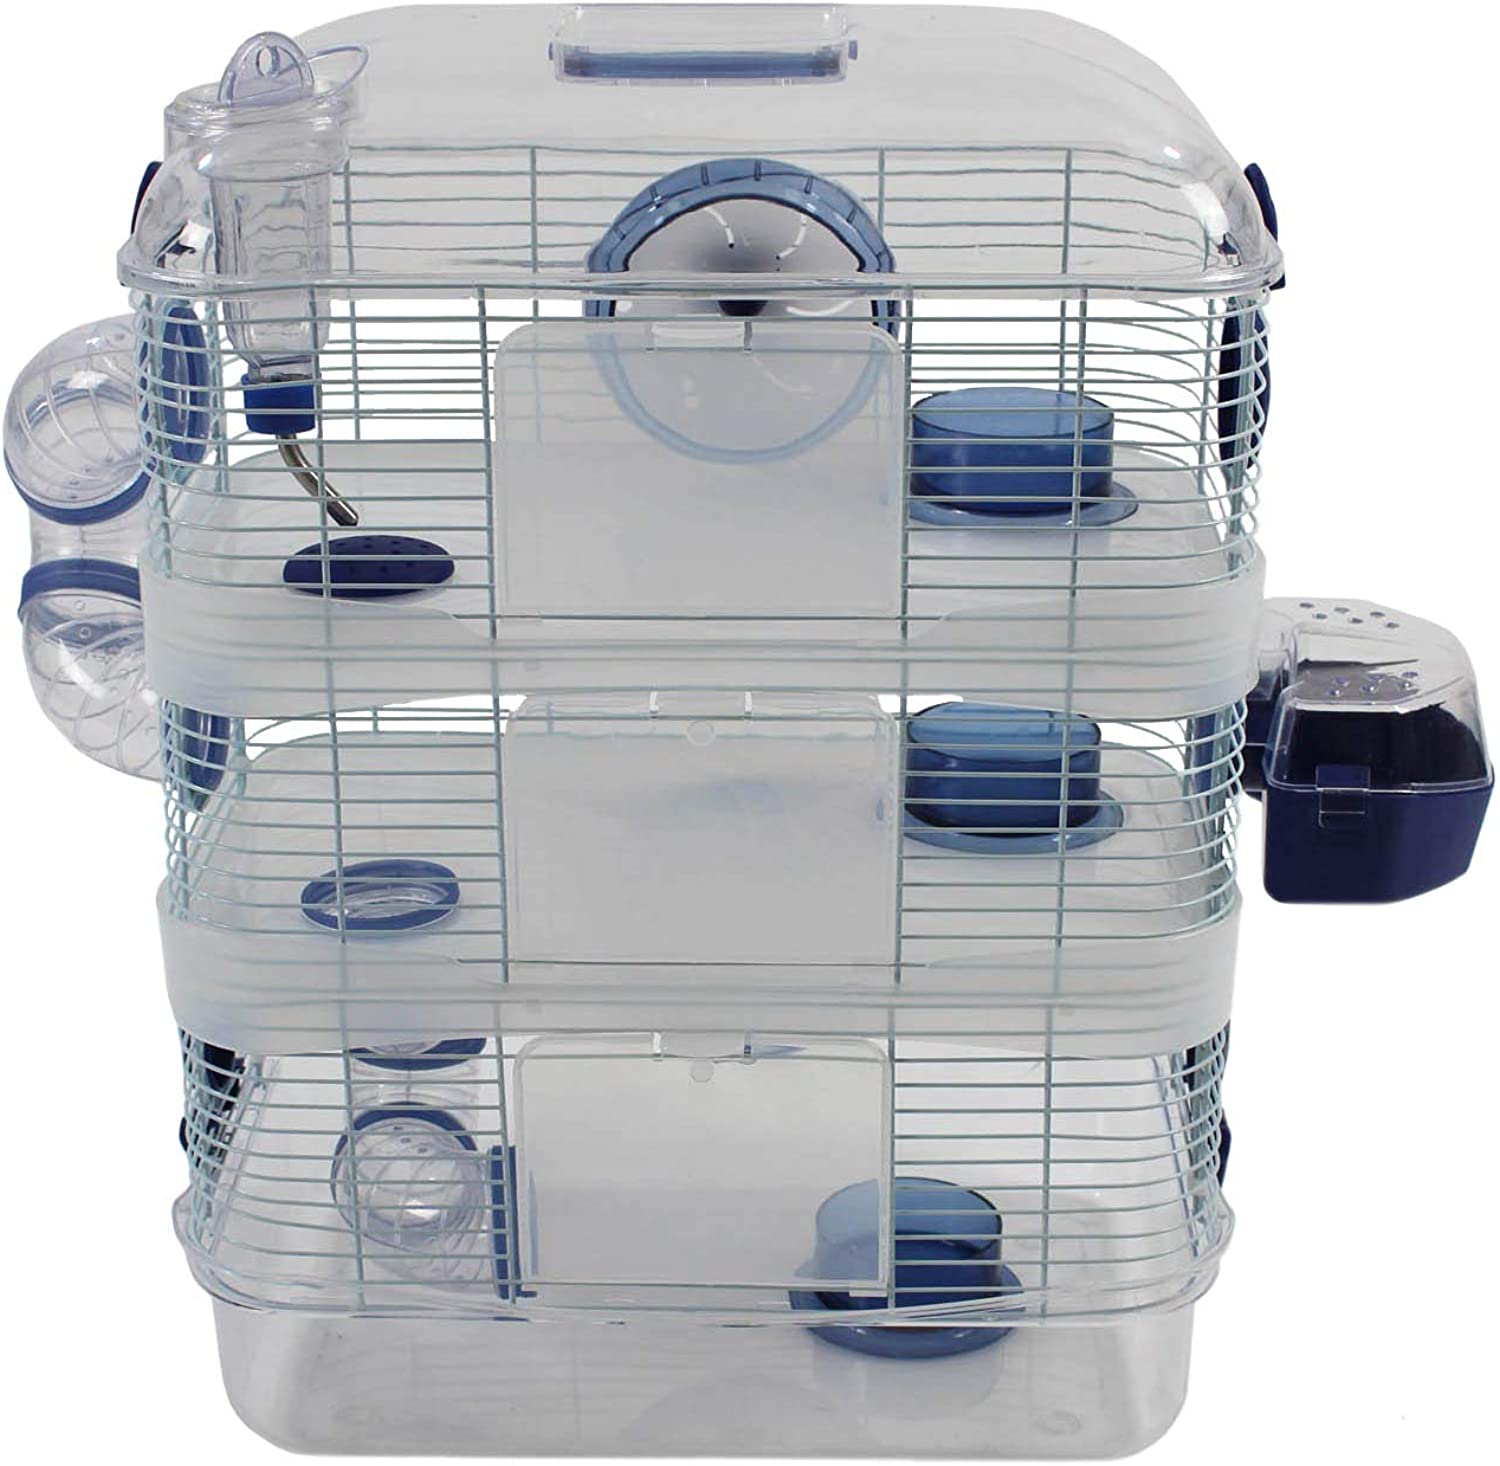 Easipet Indoor Clear Plastic Hamster Cage In 2 Colour & Size Options (bluee Triple Layer)